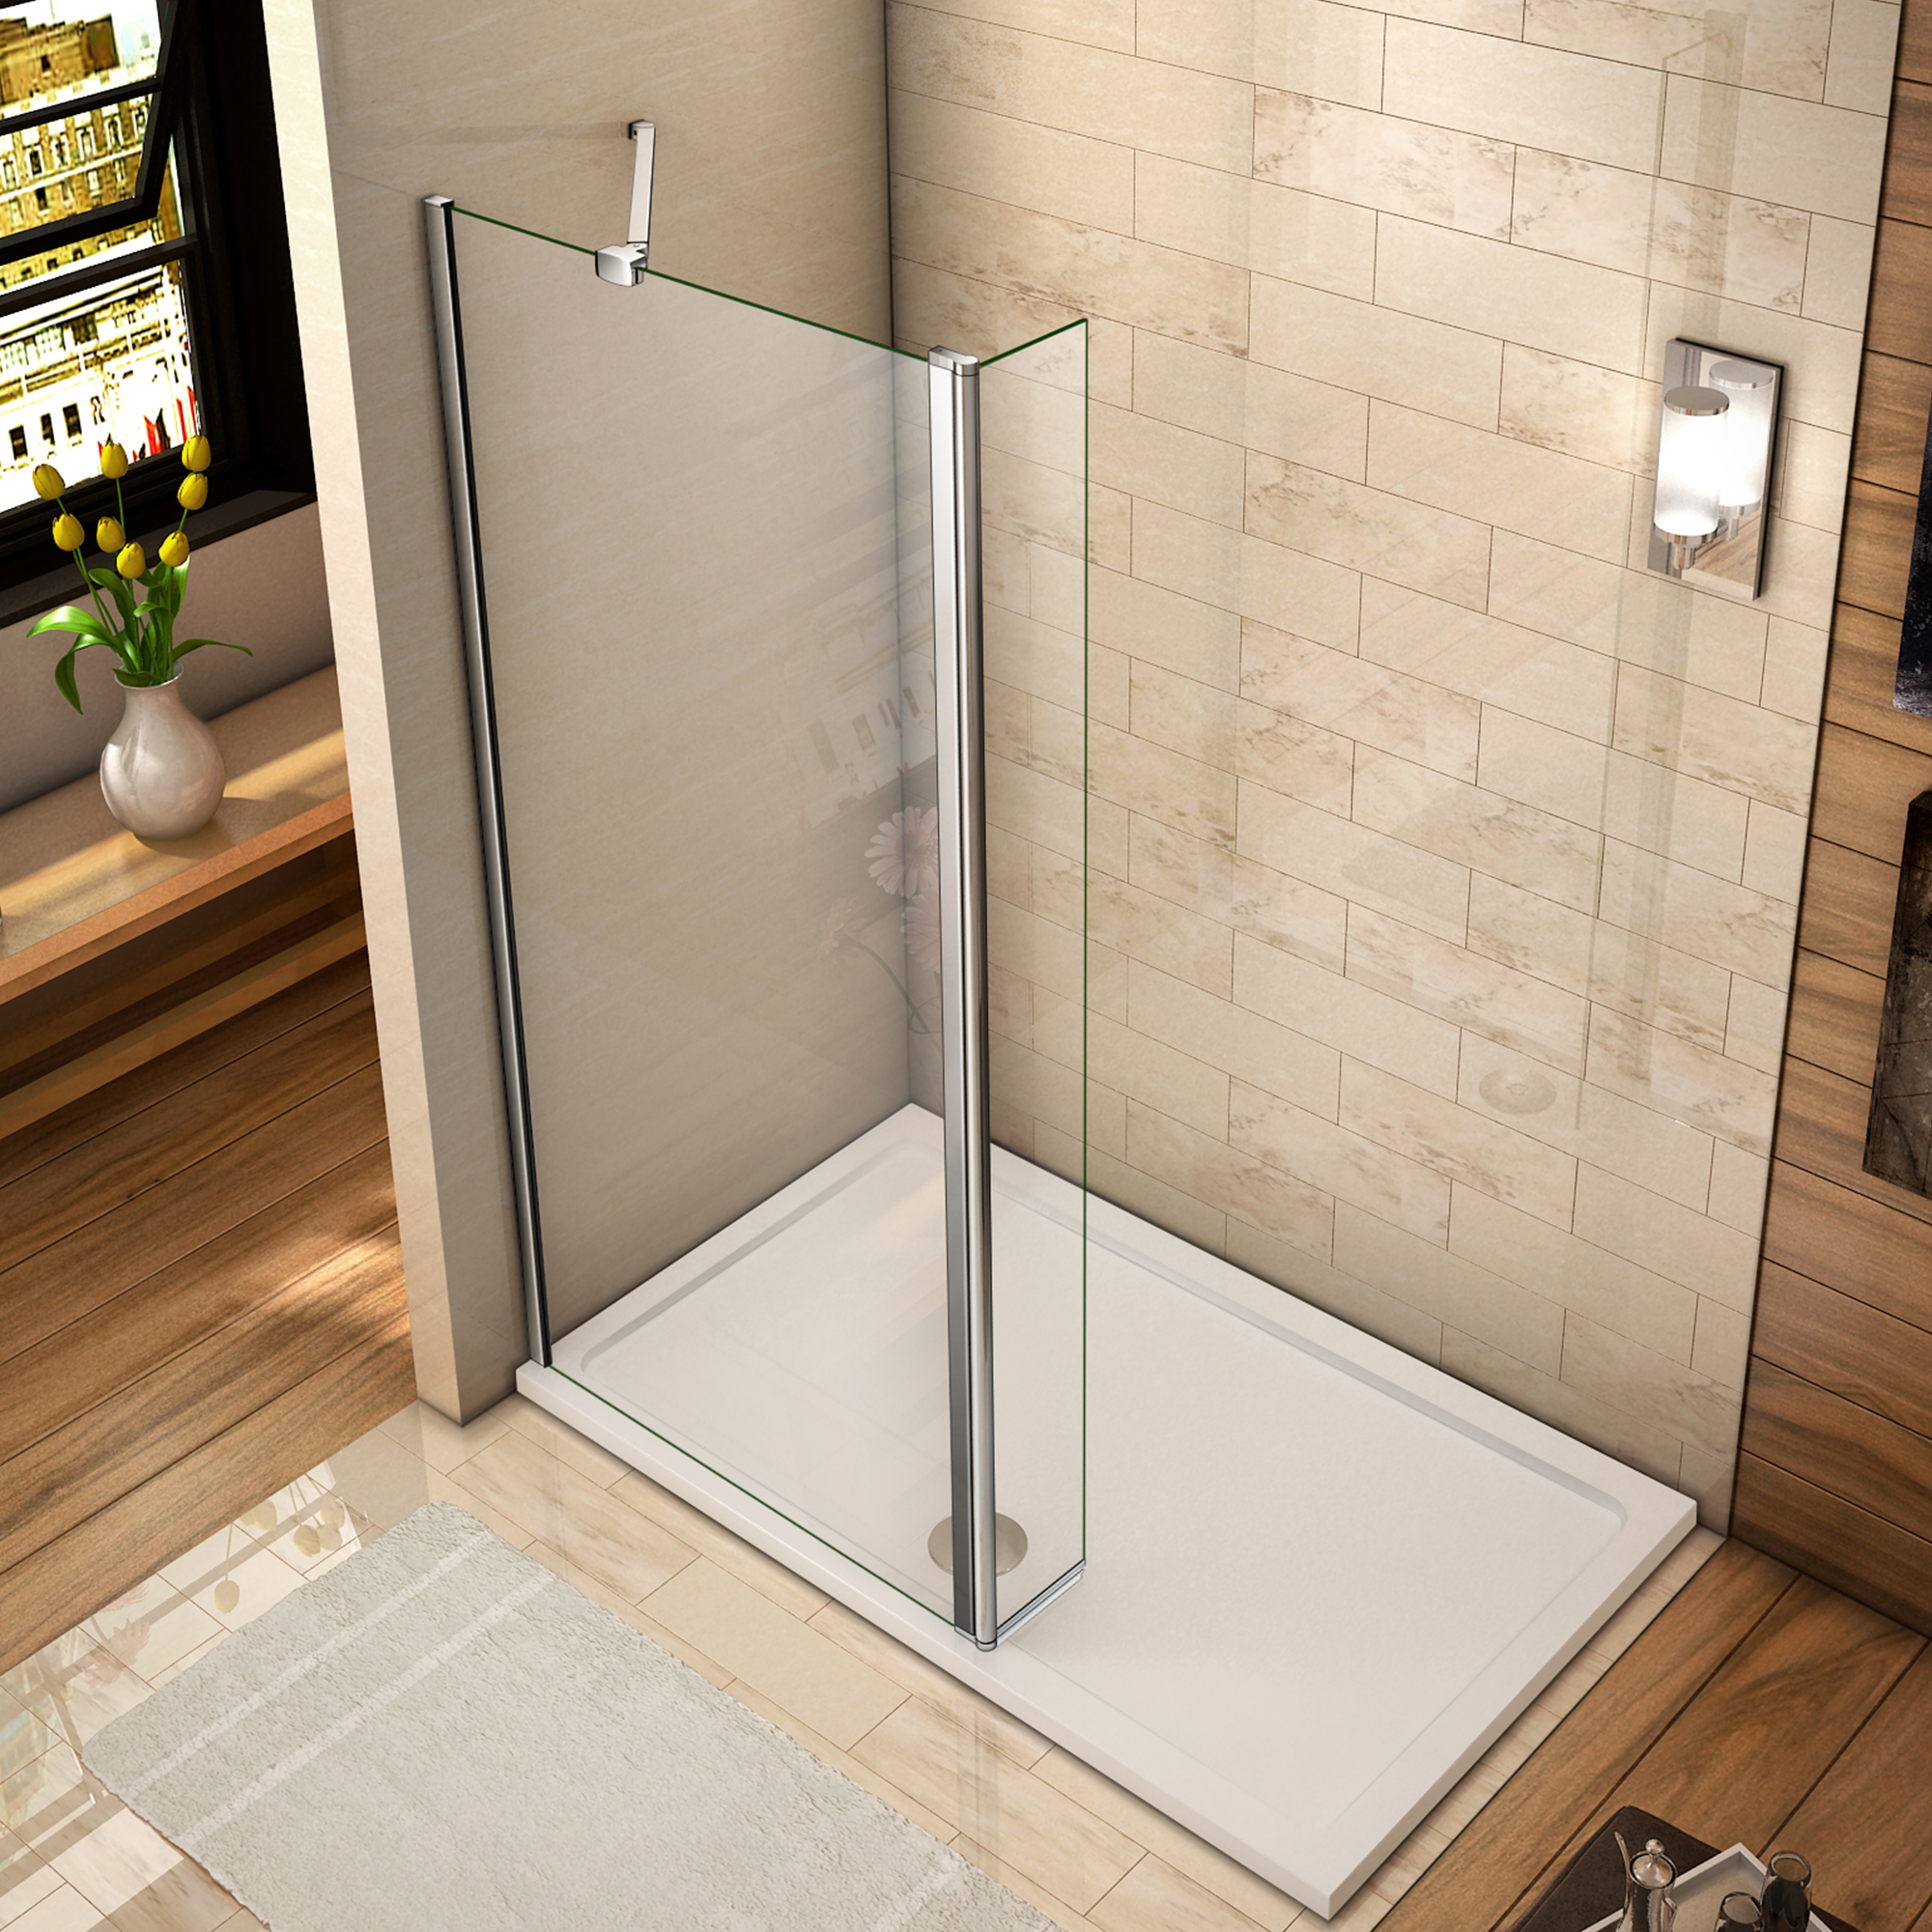 Luxury Wet Room Shower Enclosure Walk In 8mm NANO Glass Screen Panel ...